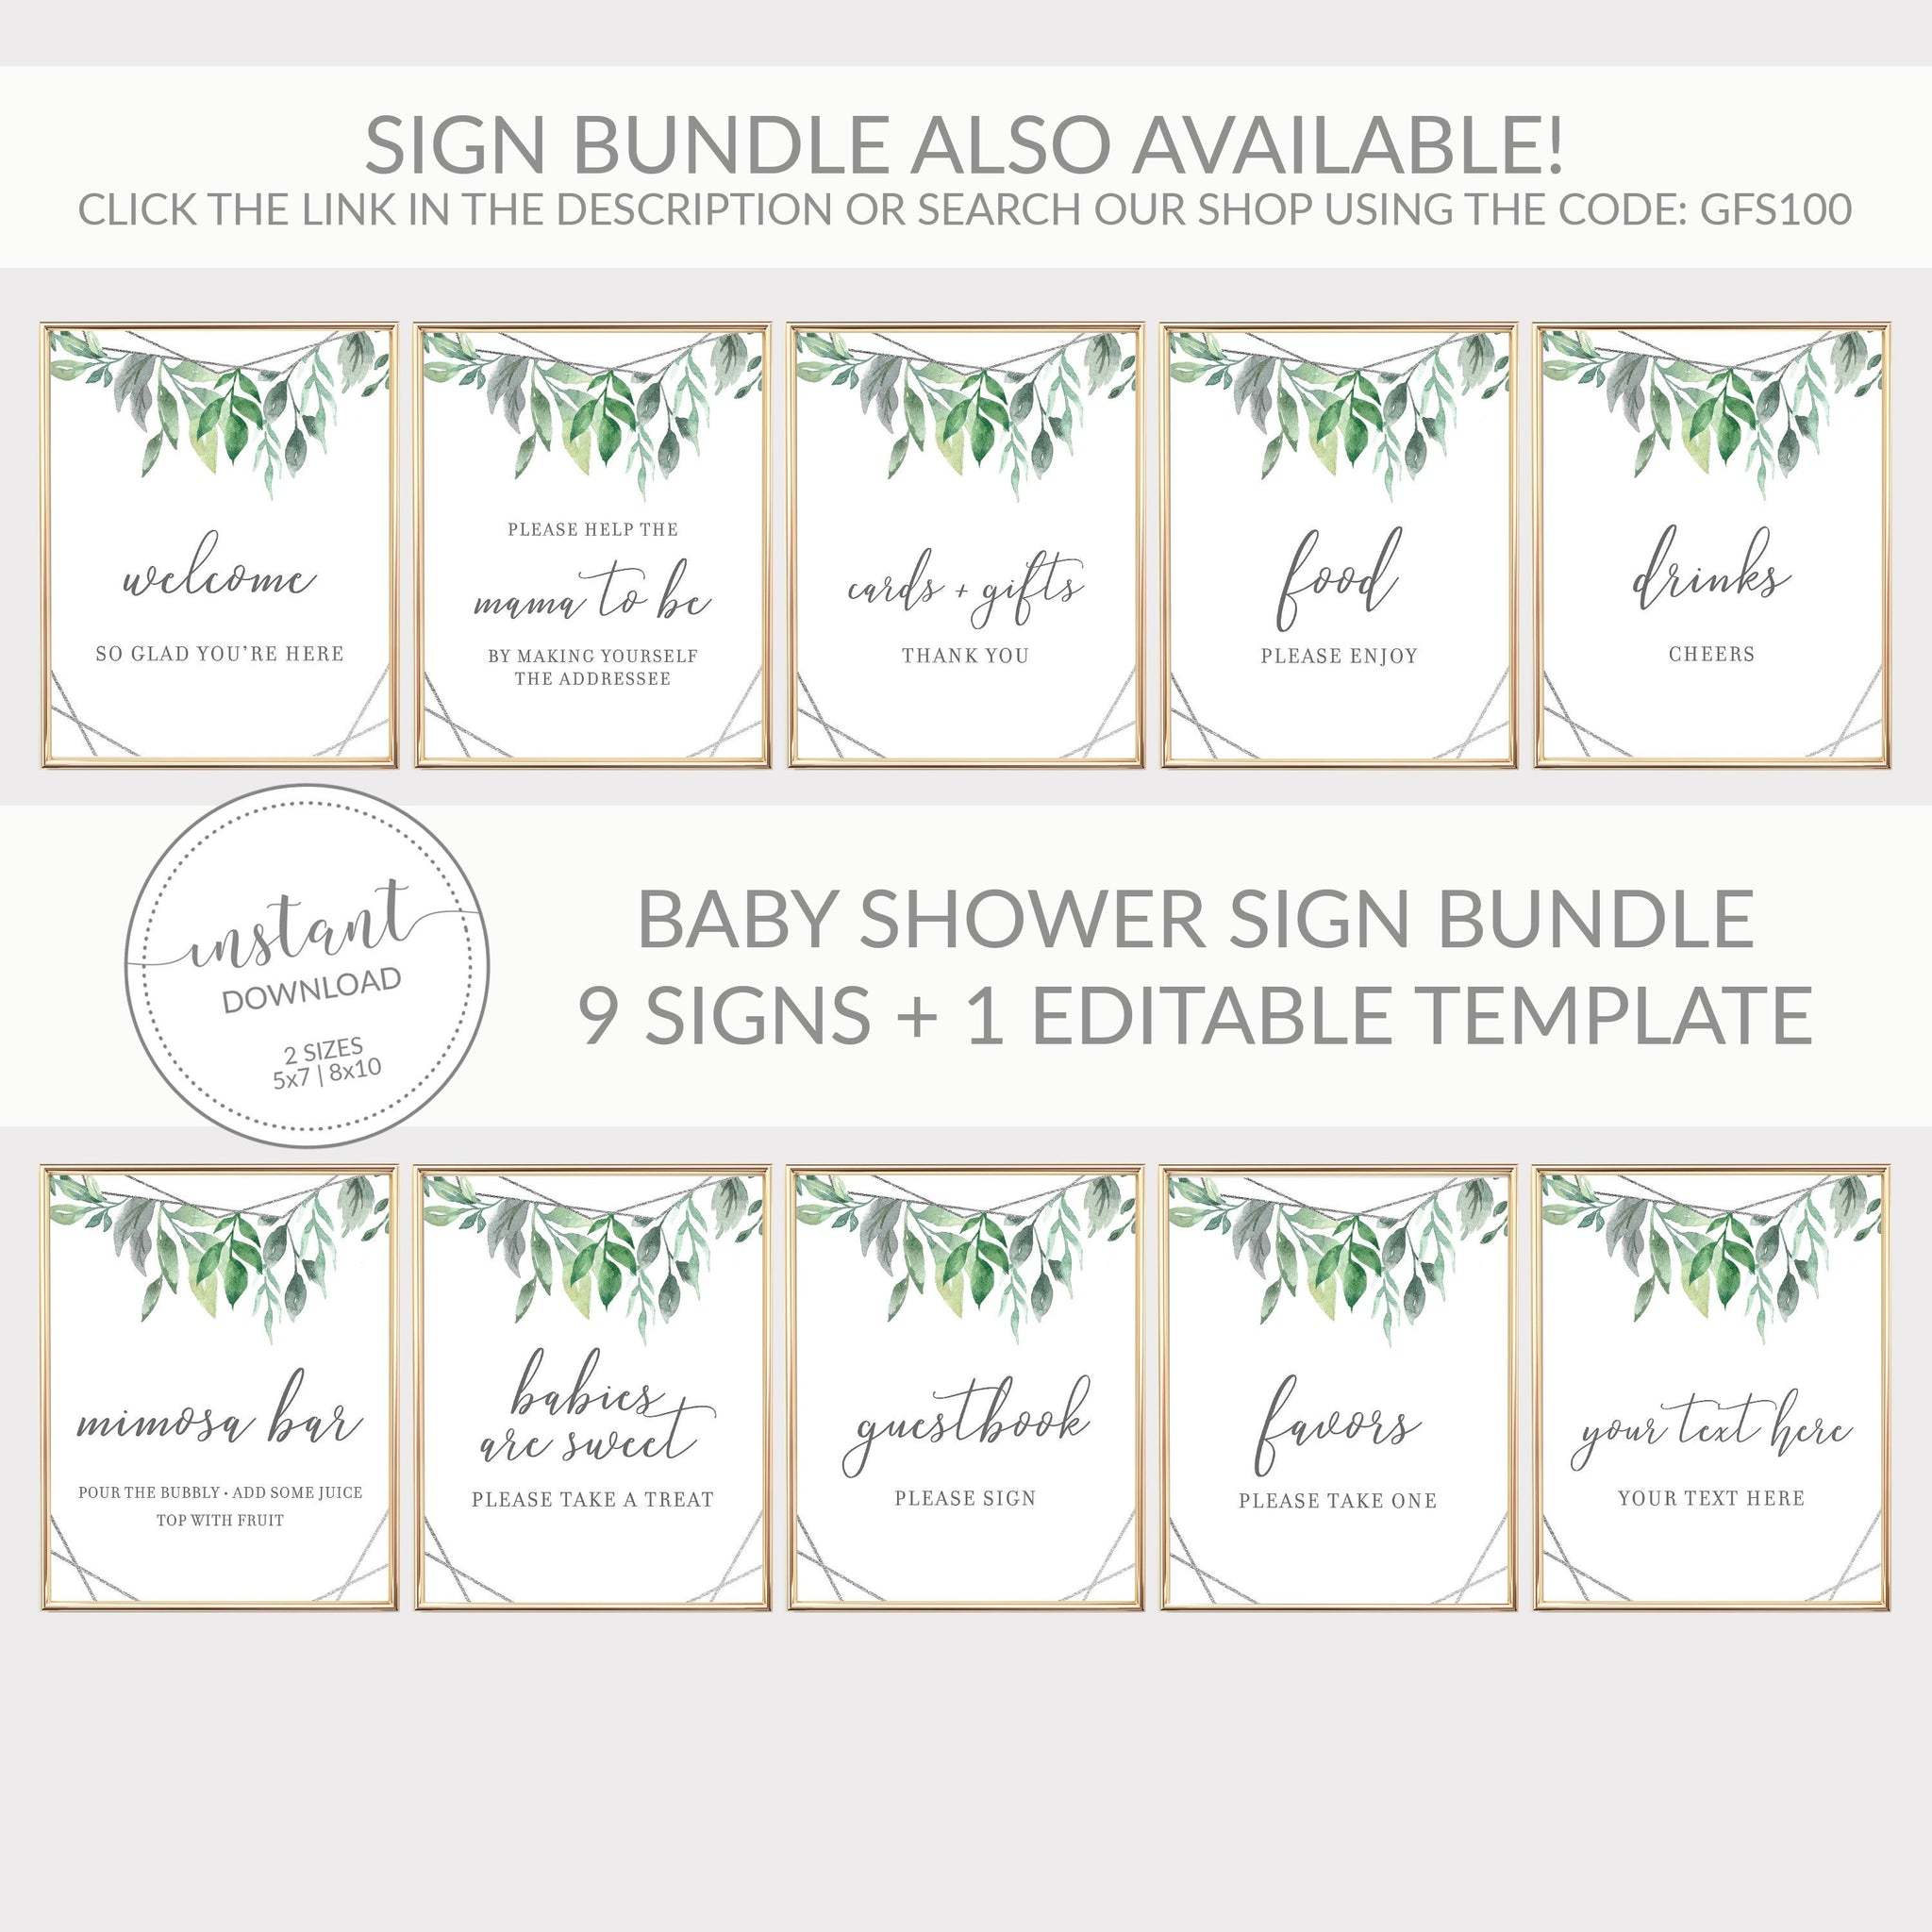 Geometric Silver Greenery Printable Baby Shower Address an Envelope Sign INSTANT DOWNLOAD, Baby Shower Decorations and Supplies - GFS100 - @PlumPolkaDot